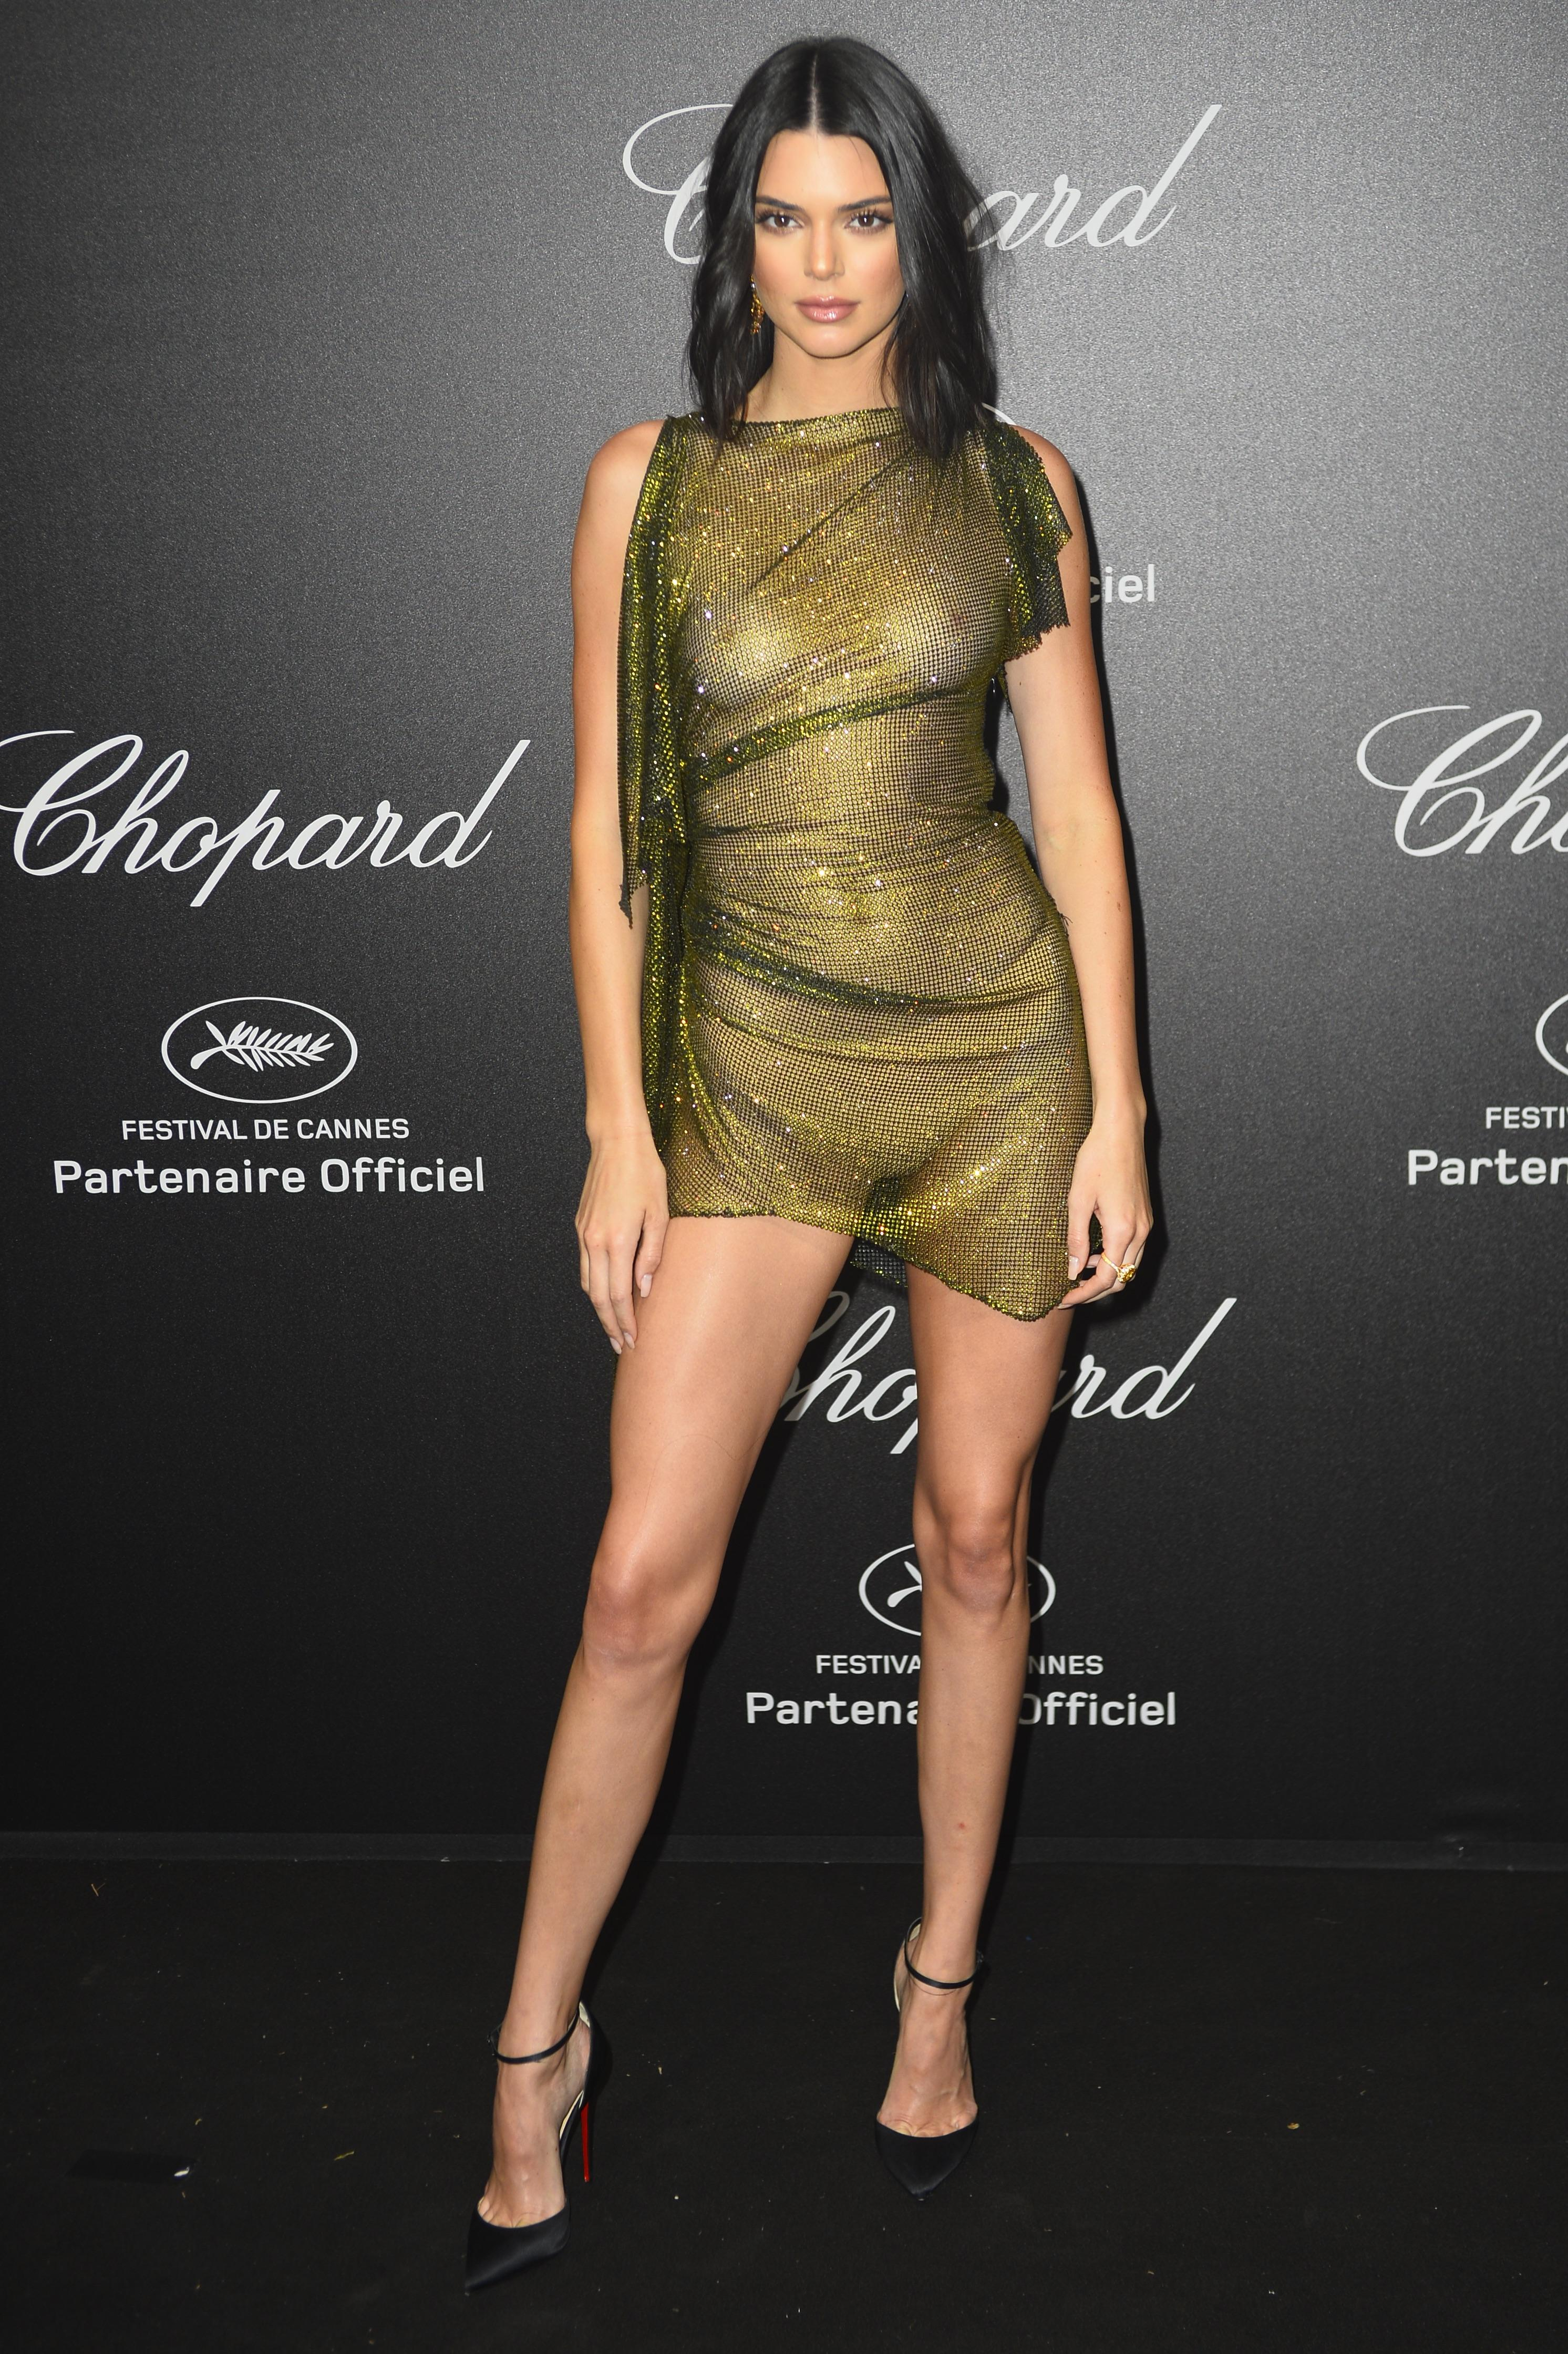 Kendall Jenner pussy showing